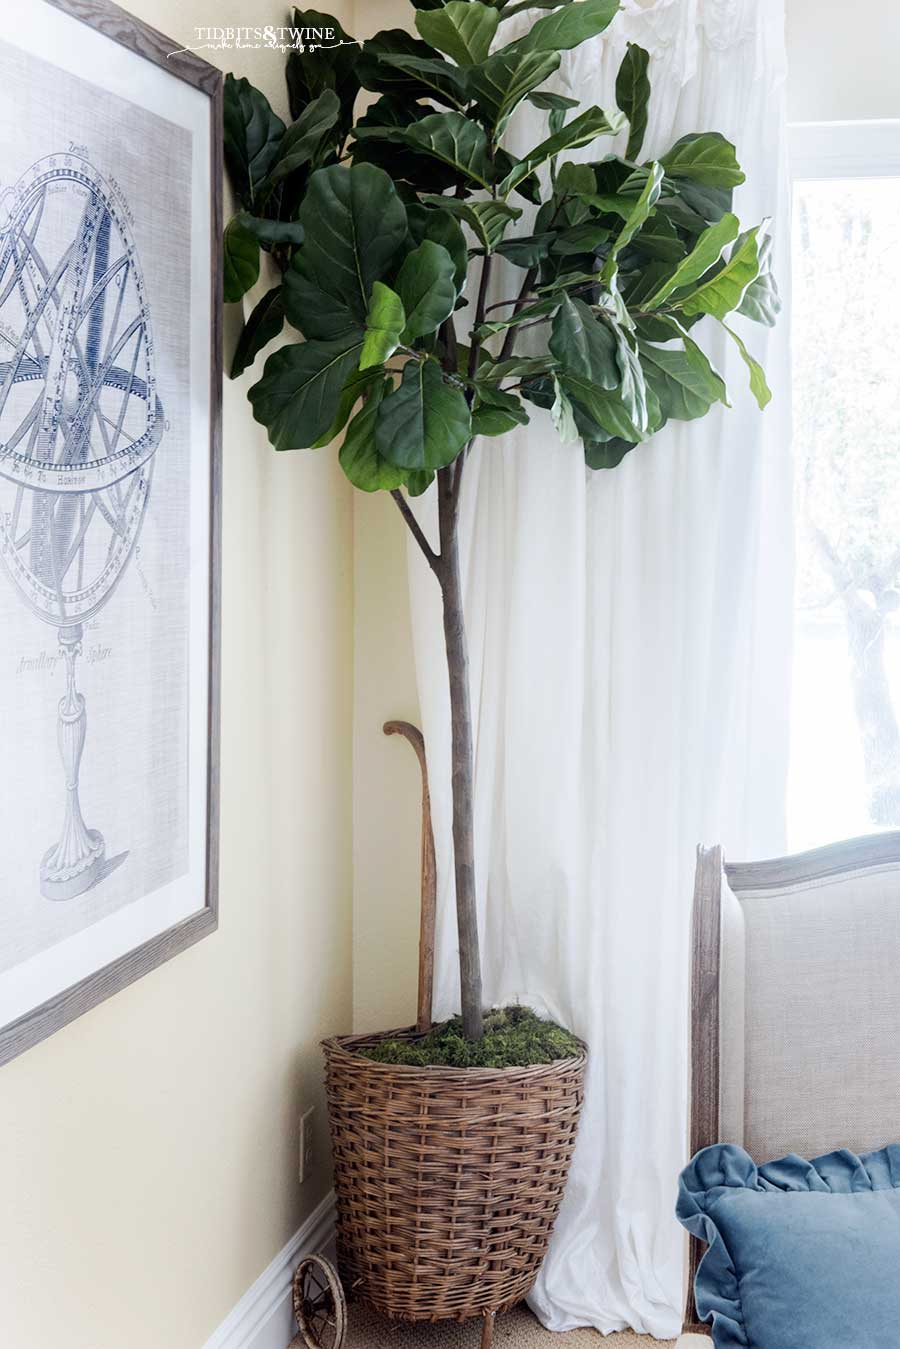 Faux fiddle leaf fig in an antique French market basket